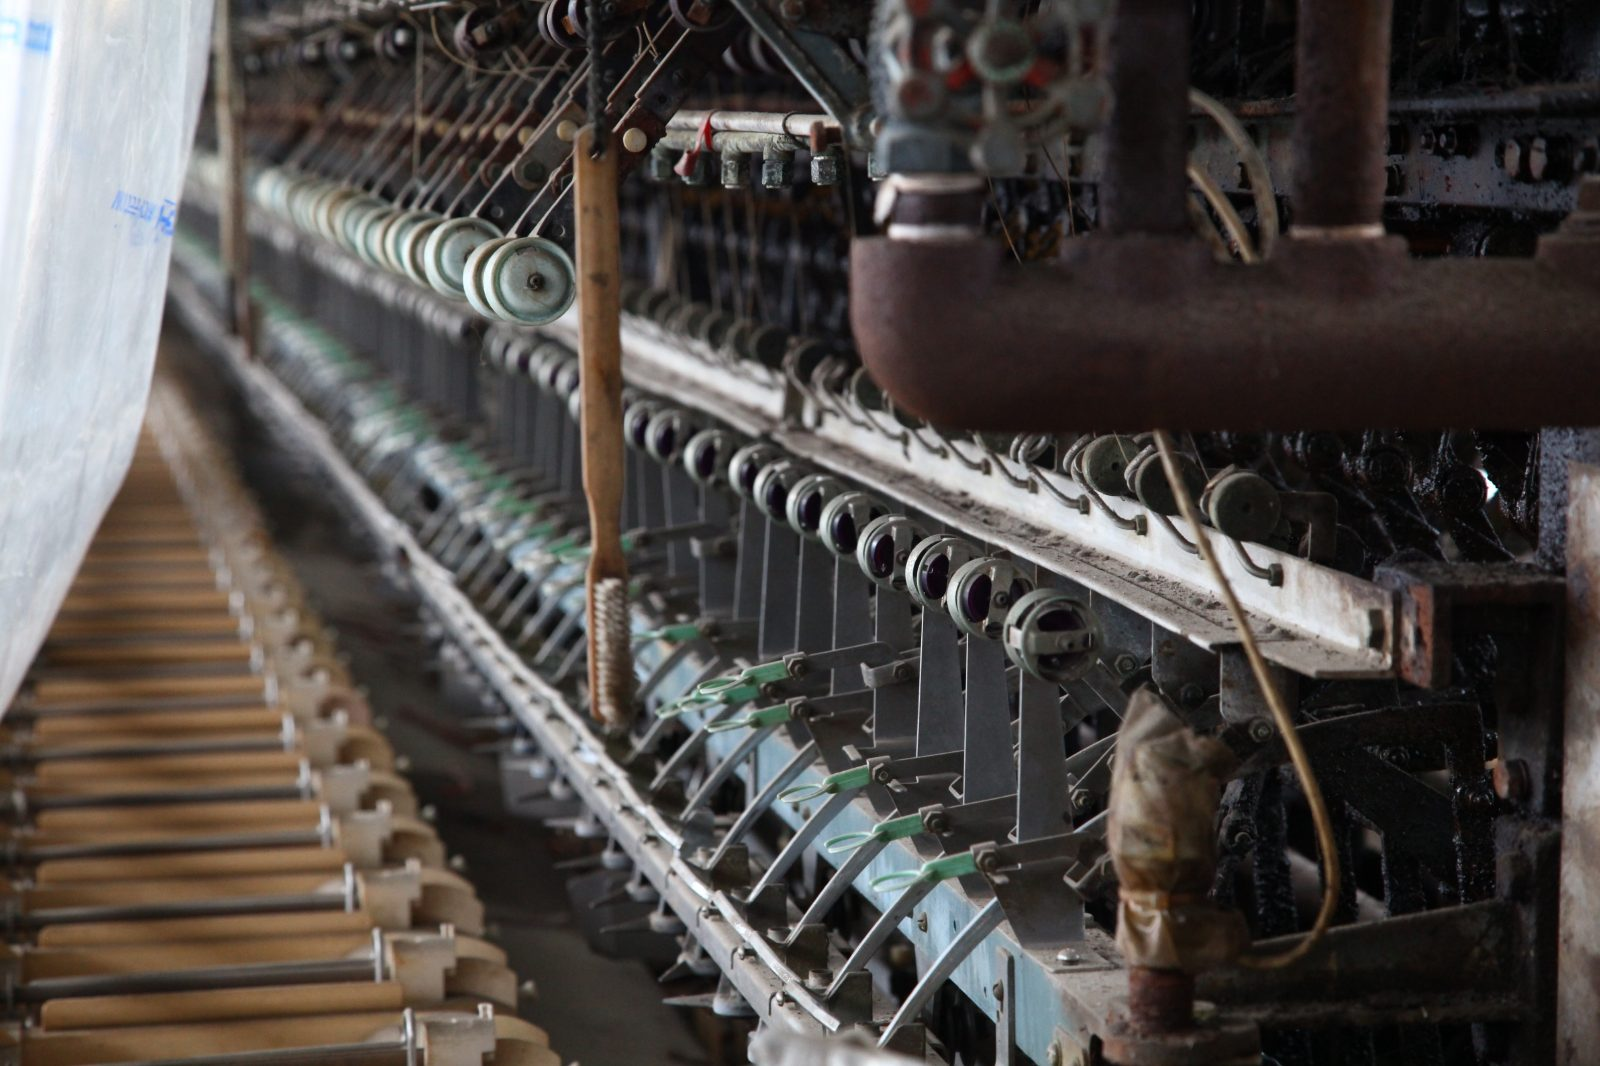 The Tomioka Silk Mill and Related Industrial Heritage